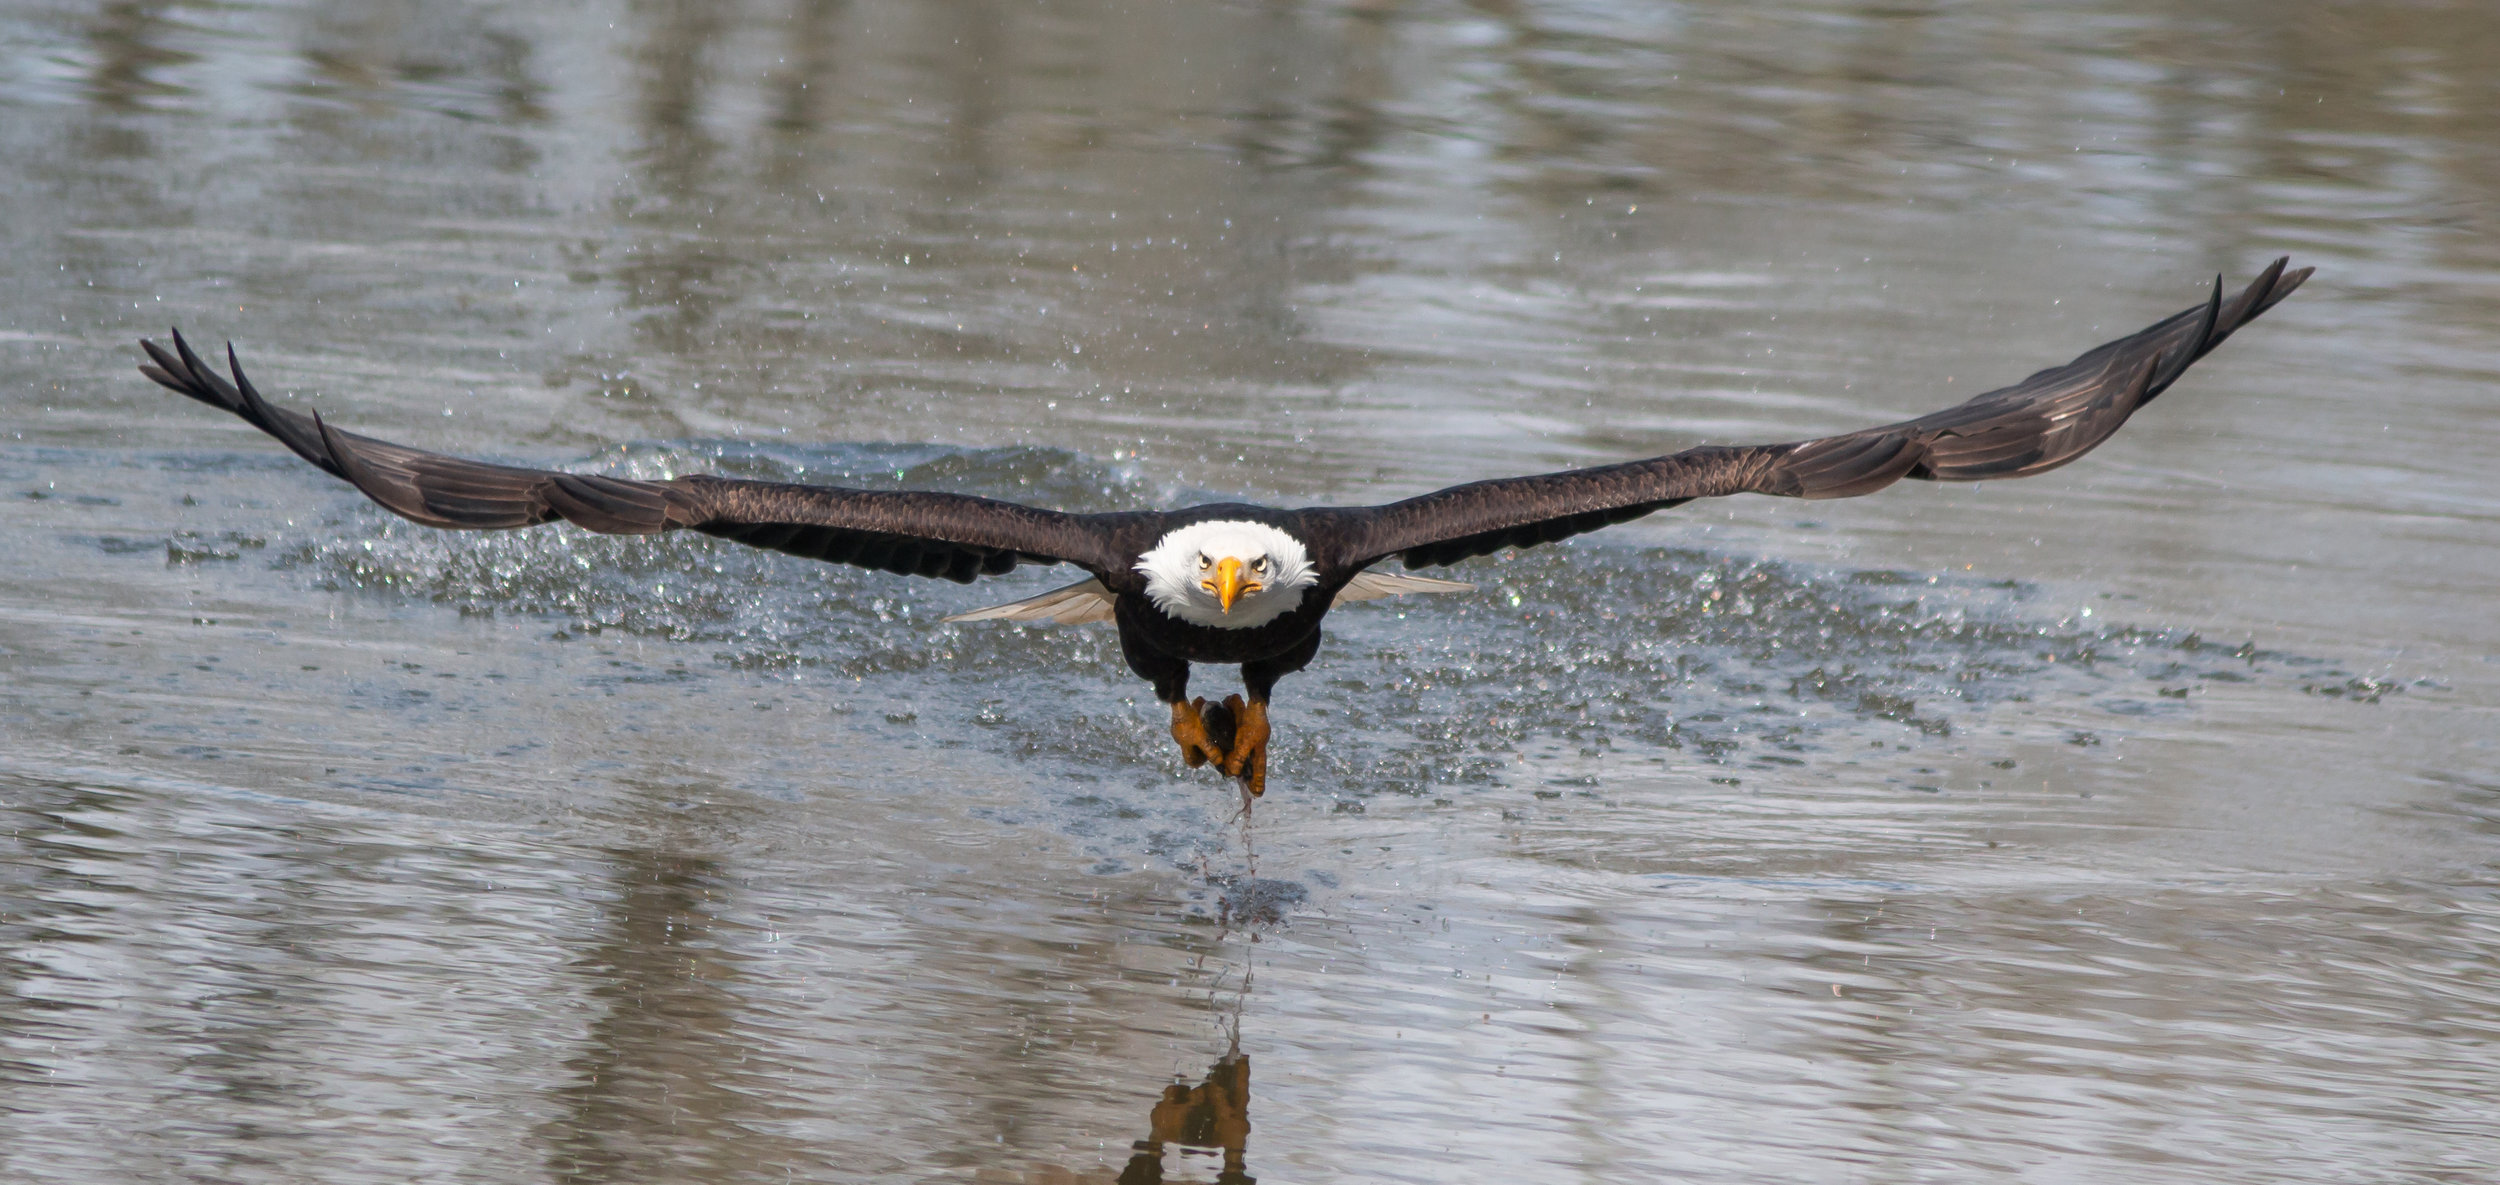 EAgle-Saved-for-Web-Narrow-dje.jpg